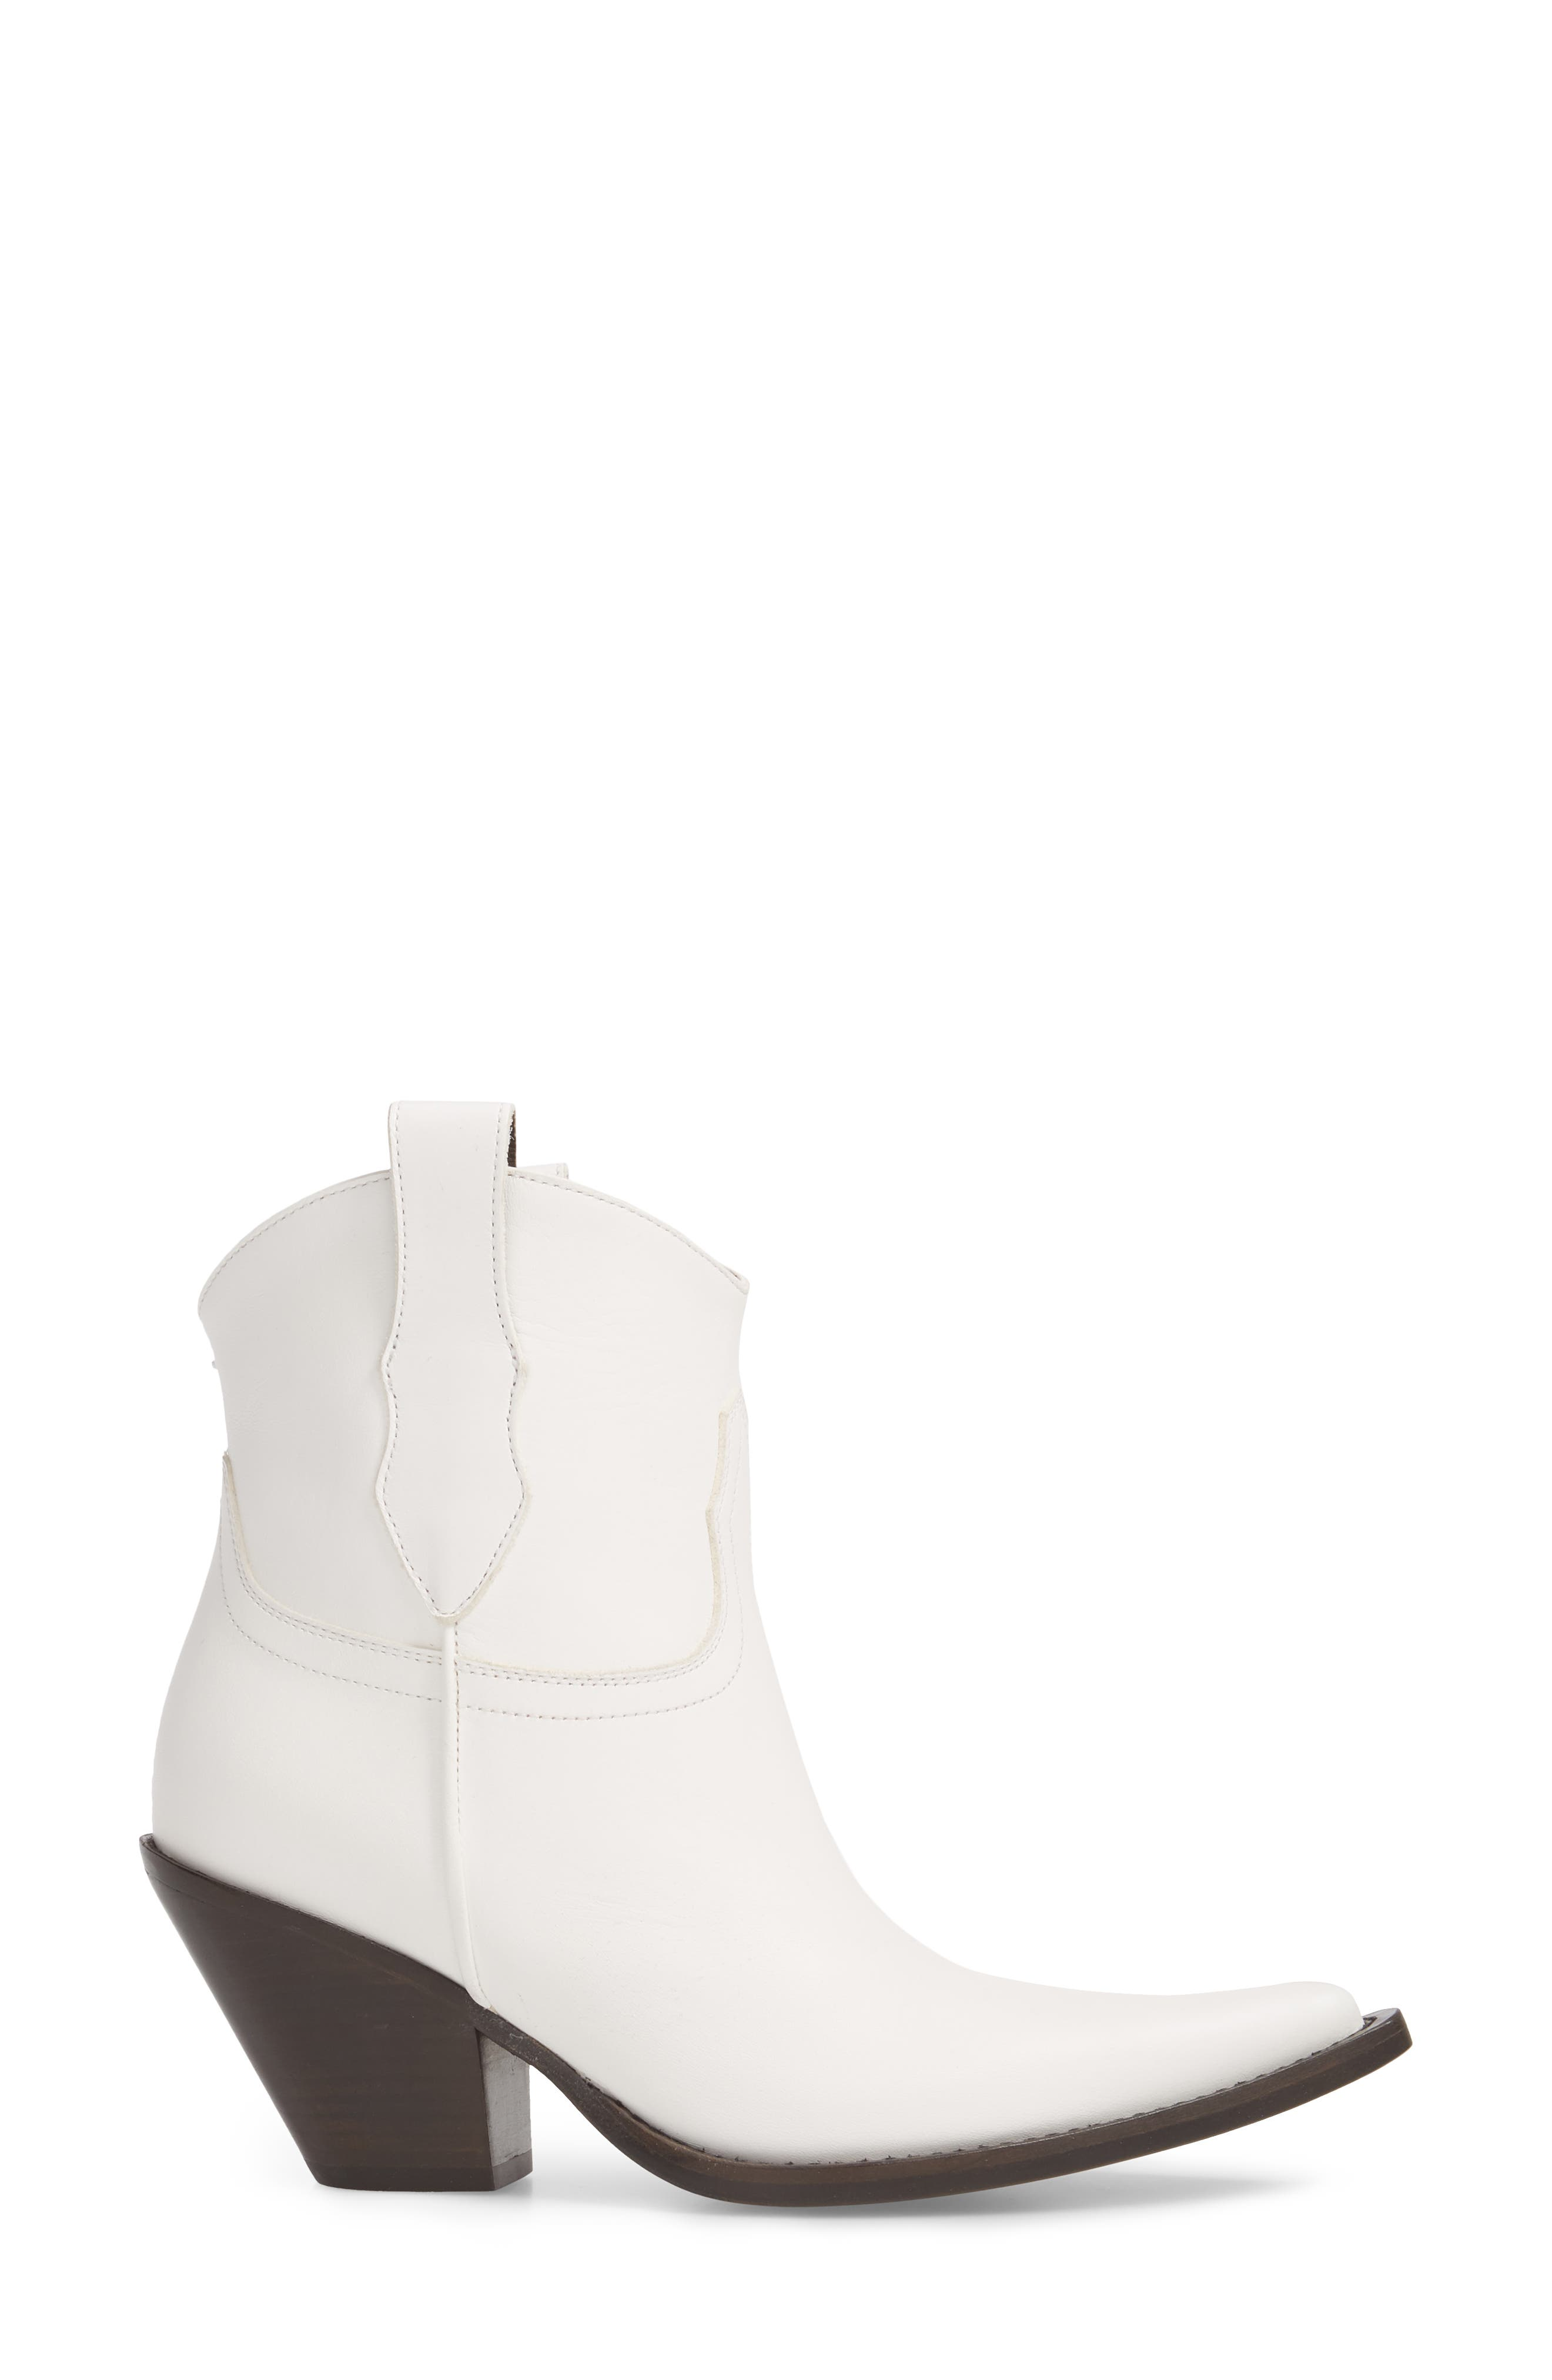 Low Mexas Western Bootie,                             Alternate thumbnail 3, color,                             White